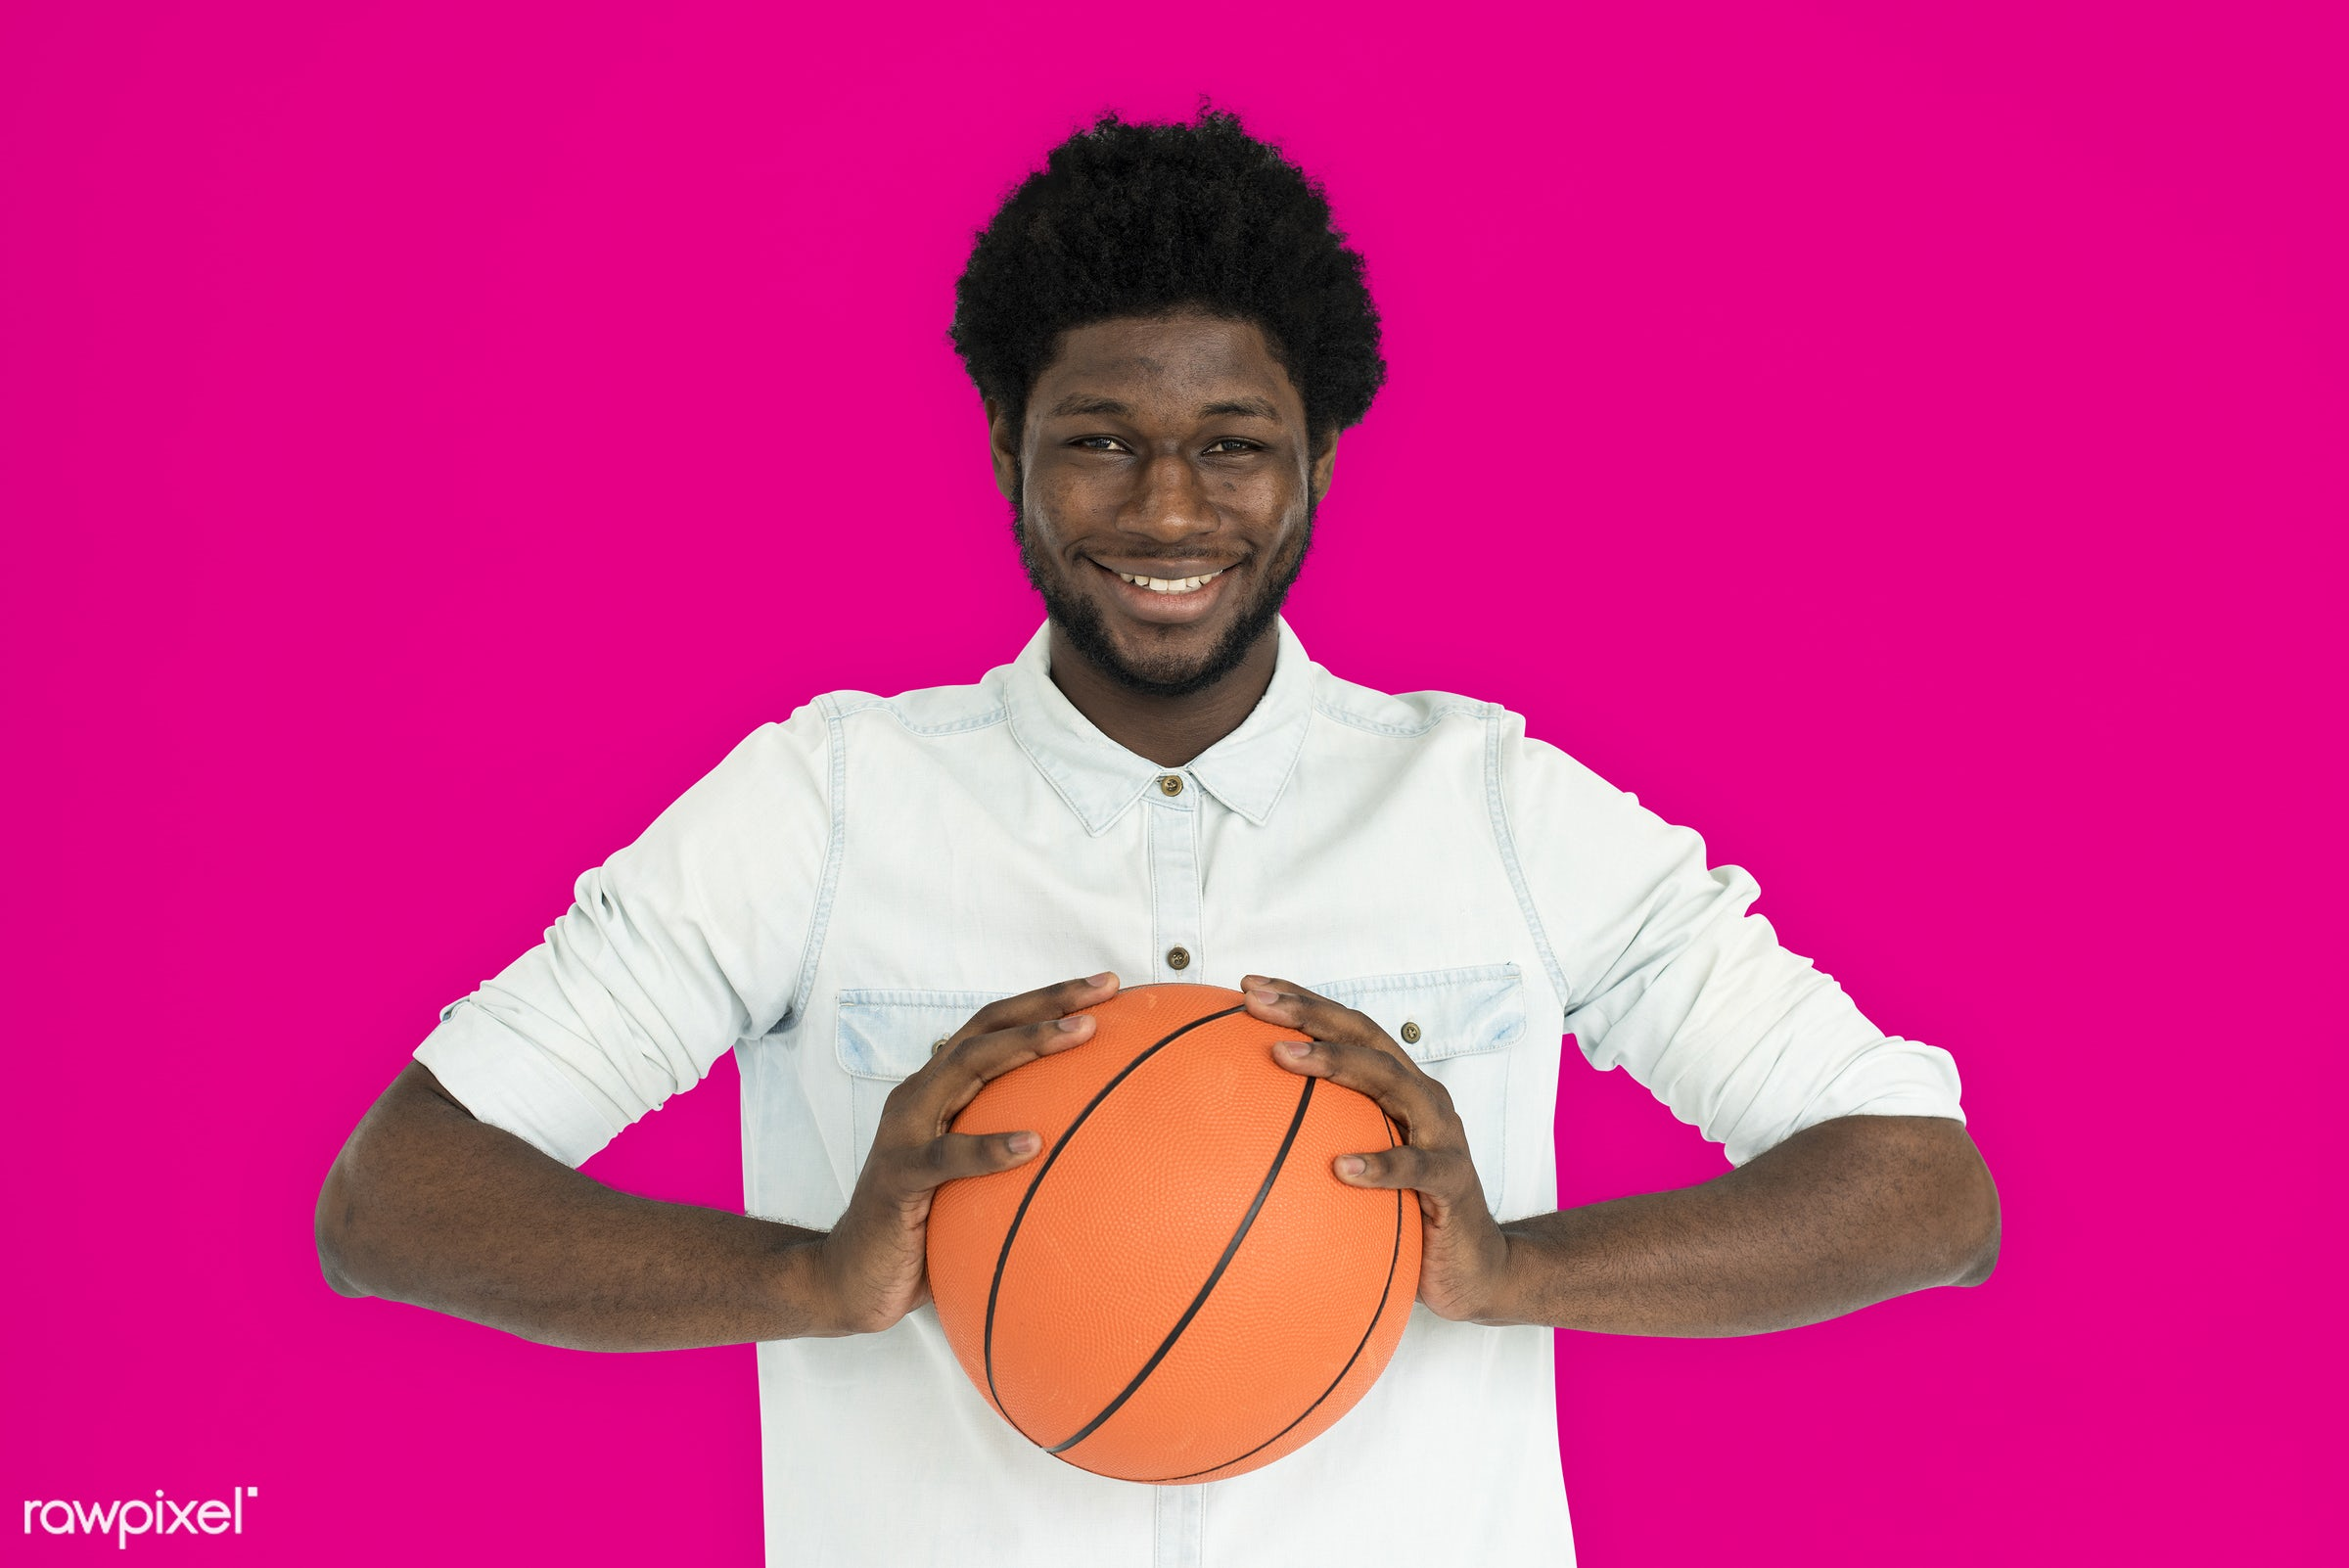 studio, basketball, expression, person, holding, vibrant, people, lifestyle, pink, cheerful, smiling, isolated, laugh, hobby...